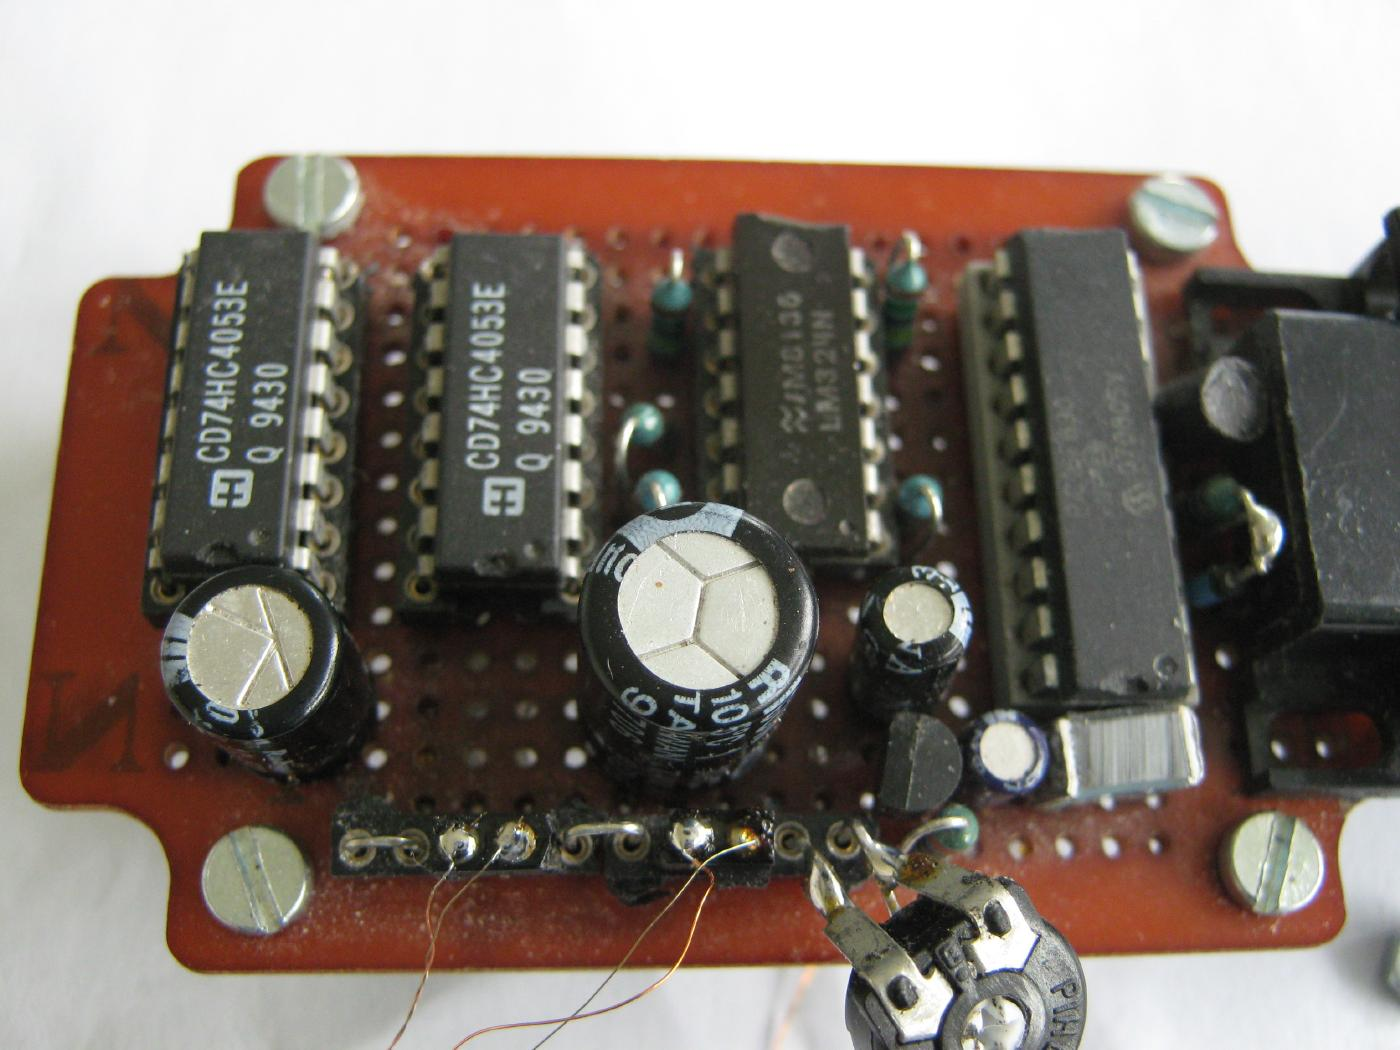 Panteltjes Th Pic Page Digital Temperature Meter Using Lm335 Or Lm135 In This Picture The Thermocouple Connections Are Shorted With Little Wire Bridges You Can See Sensor On Connection Block